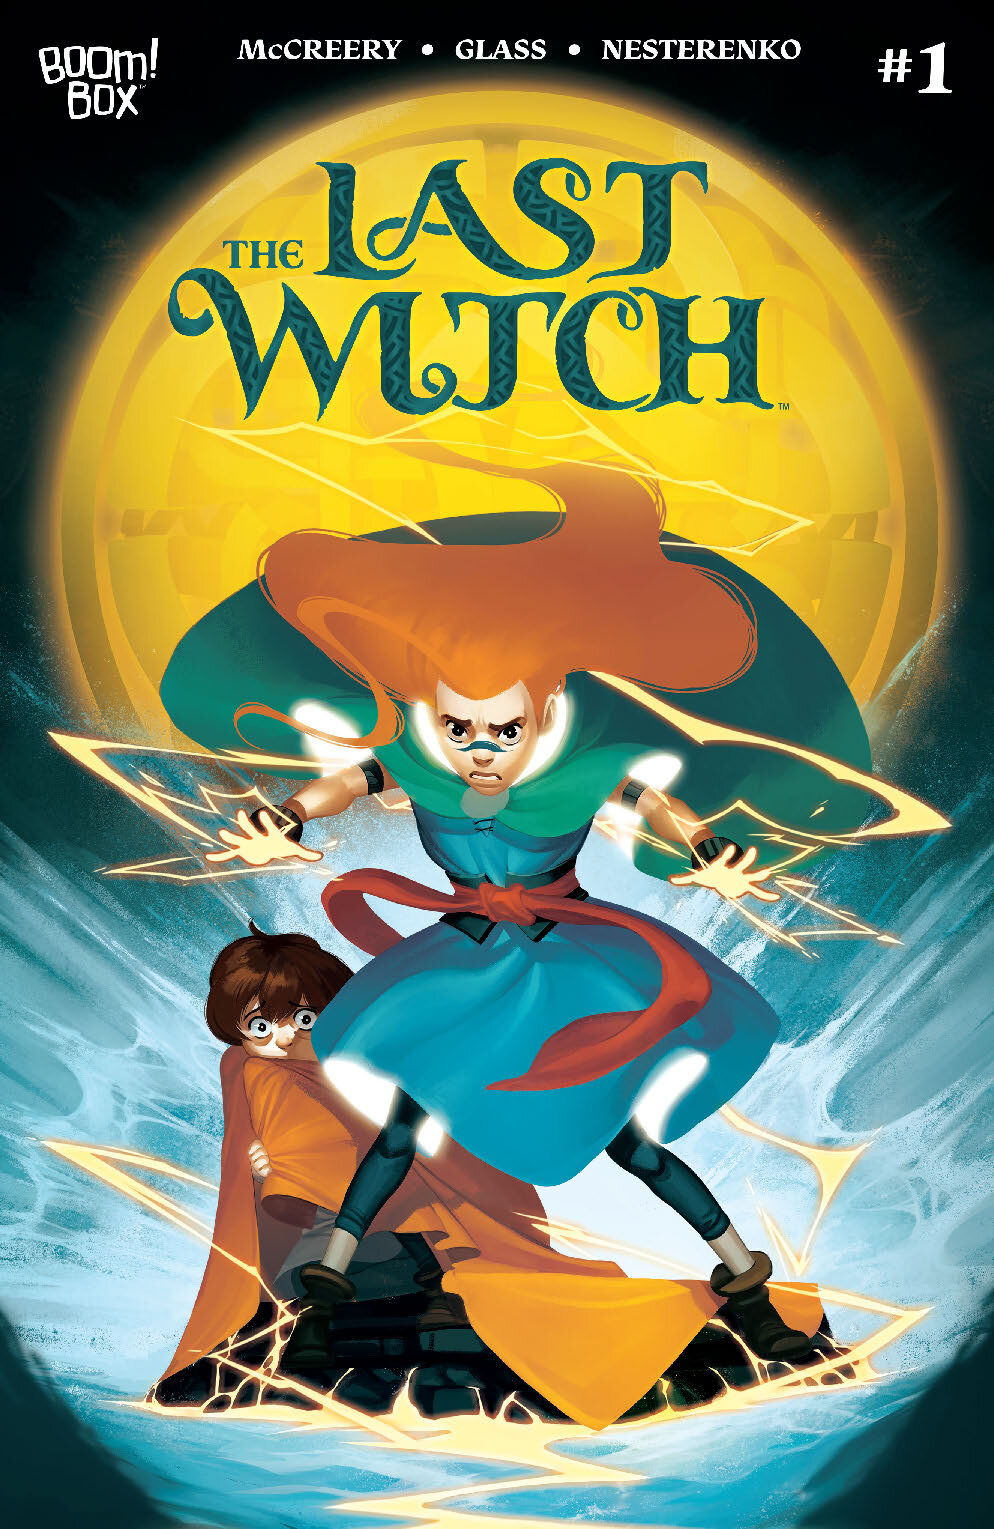 SYNOPSIS - On the day of an annual festival, young Saoirse's father and entire village are destroyed by the vengeful Cailleach. Now, on the run with her mysterious Nan and her younger brother Brahm, Saoirse discovers that the blue-black birthmark across her shoulder that has always made her an object of teasing is actually a powerful witchmark, which allows her to resist dark magick…and take it for herself.Nan must teach Saoirse to control her powers so that she can combat the dreaded Cailleach and her devious handmaidens, before they can release the terrifying Eater of Worlds from the faerie lands — and destroy all living things!